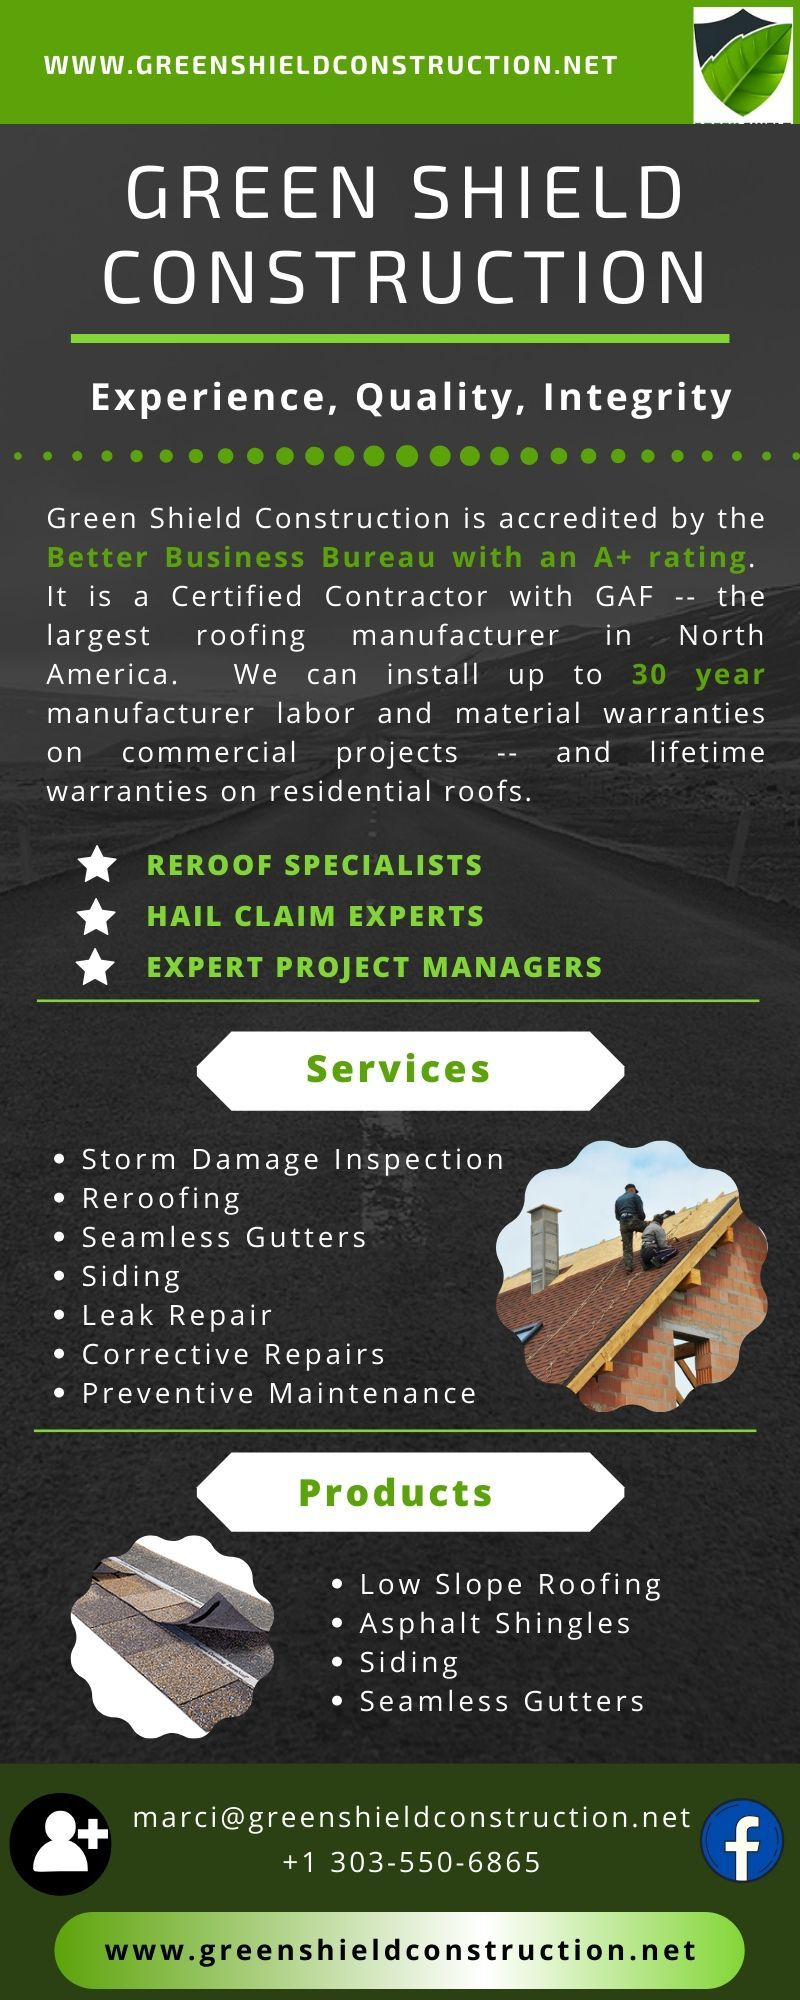 Get Full Roofing Services Colorado At One Place In 2020 Green Shield Roofing Services Cool Roof